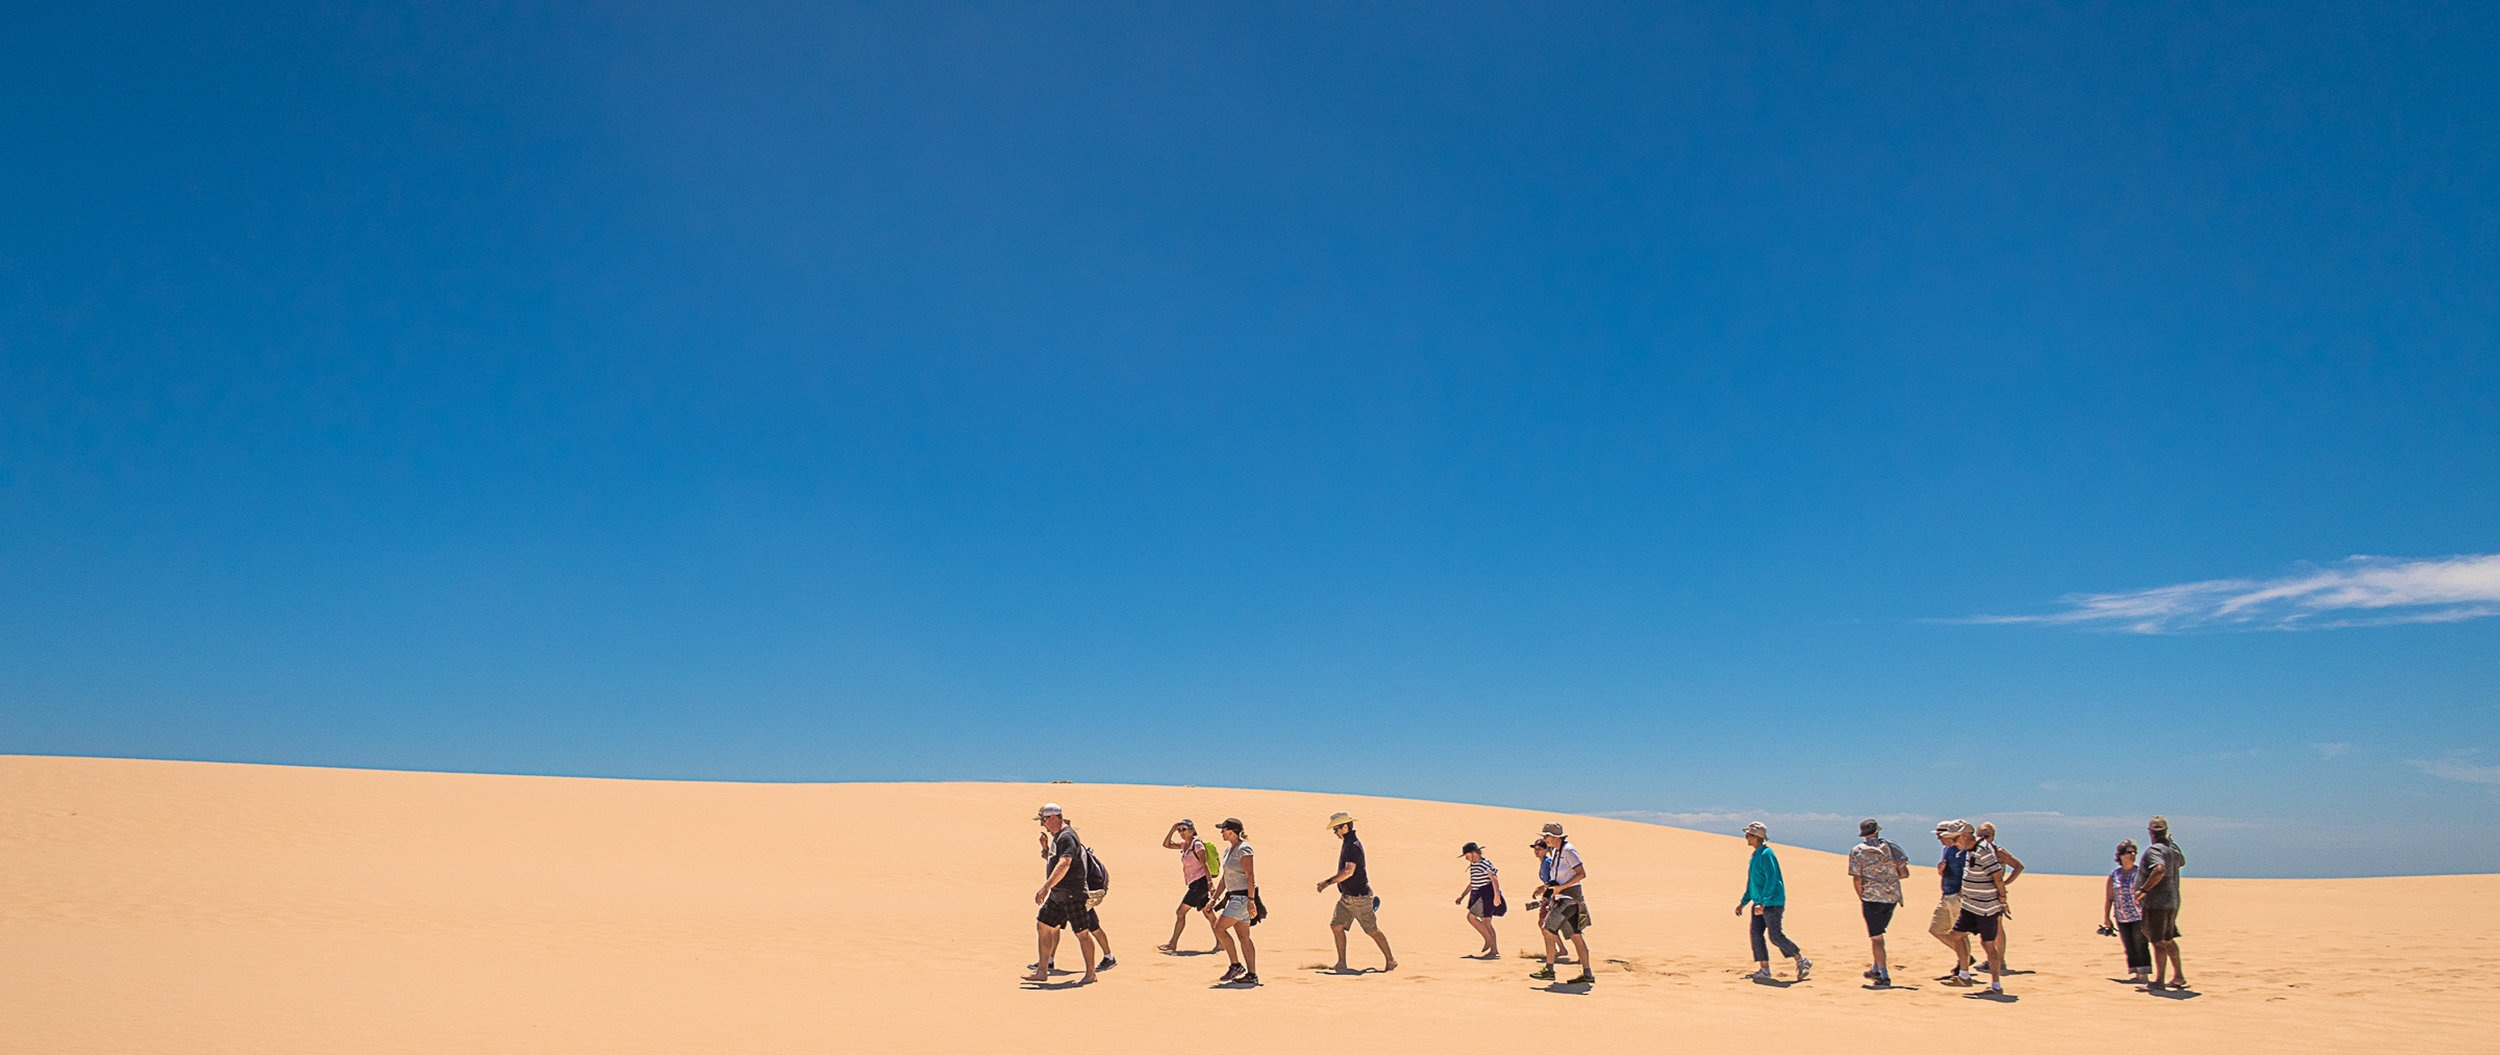 Coorong Adventure Cruise - Our 6 hour flagship tour into the Coorong National Park